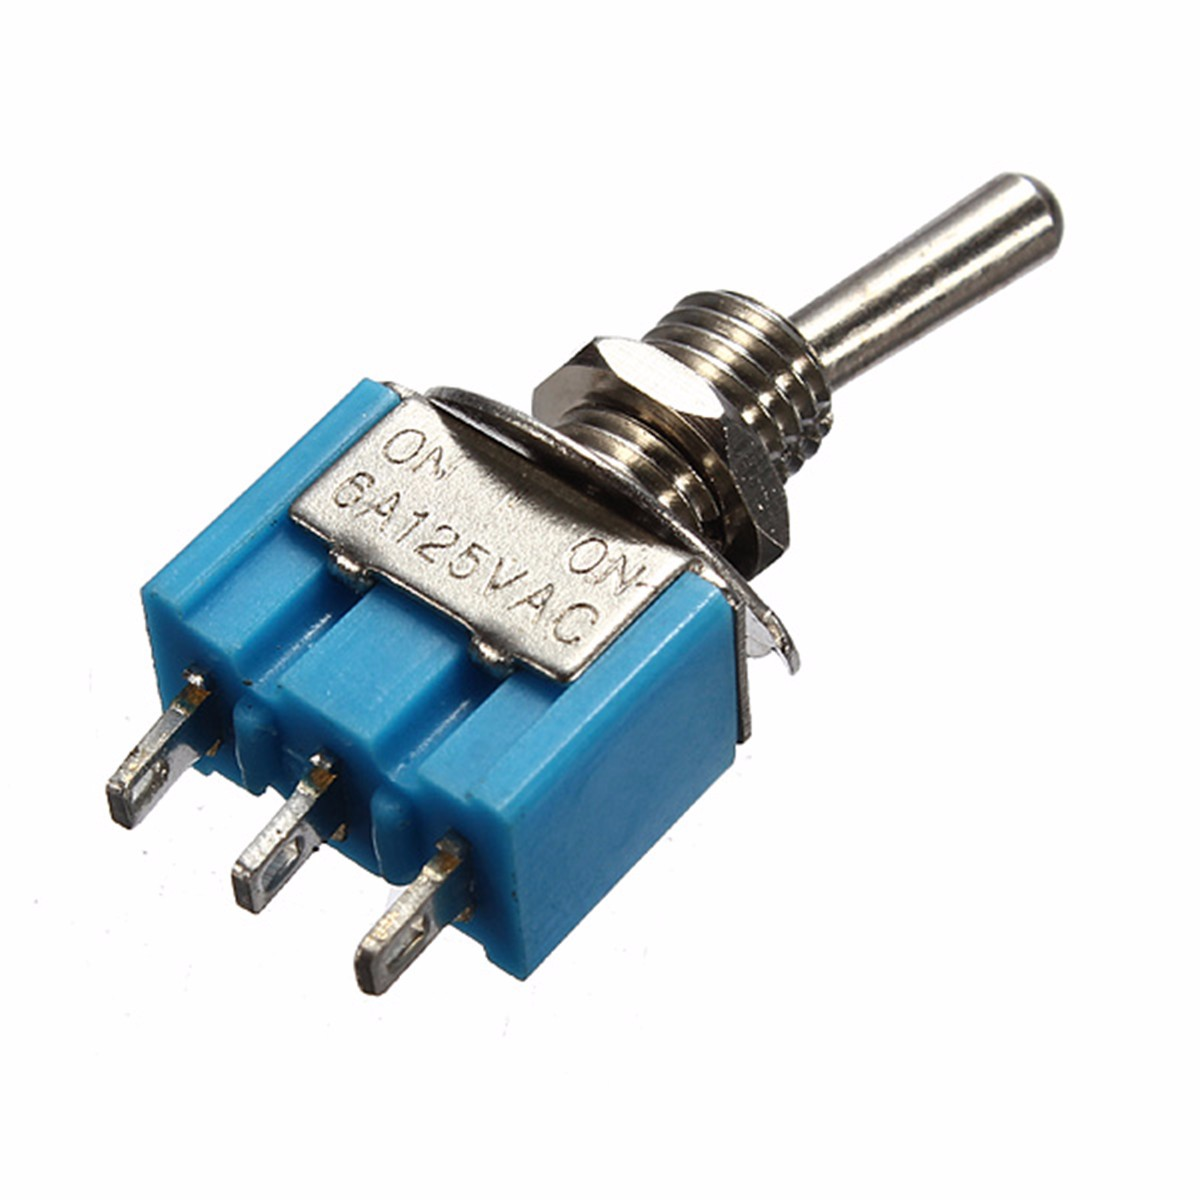 Mini 3-Pin SPDT ON-ON 6A 125VAC B102 Miniature Toggle Switches